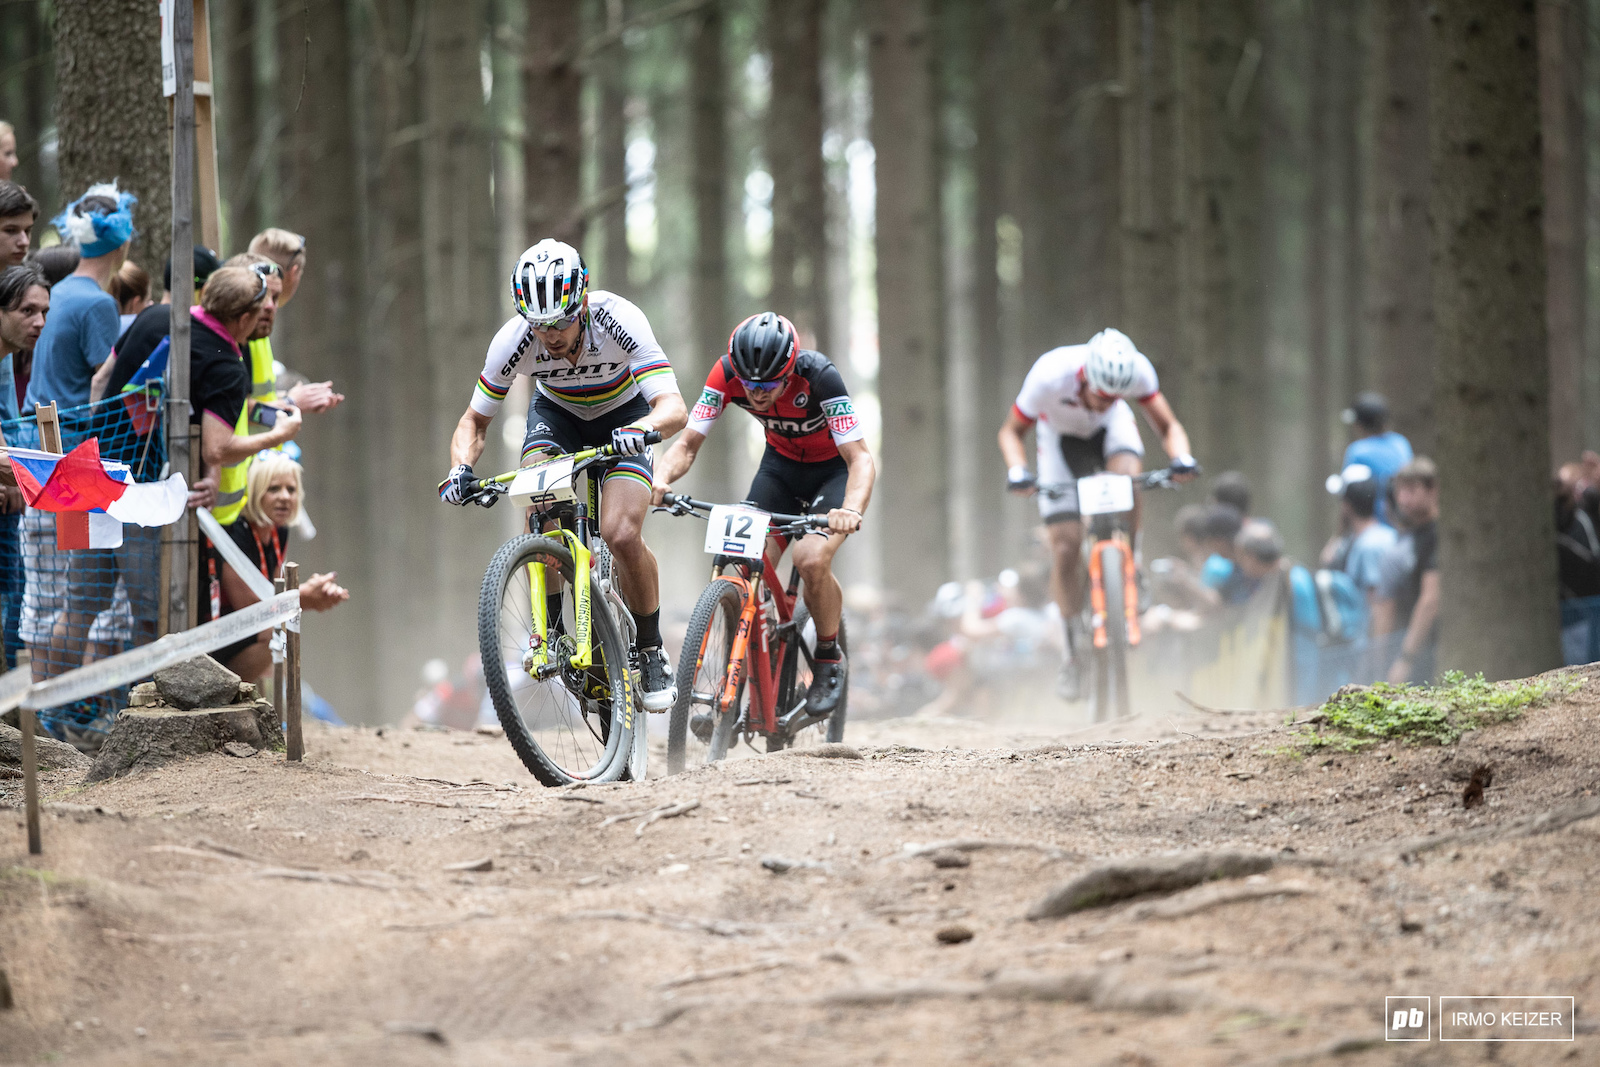 Nino Schurter s supremacy is challenged again chased down by a growing number of riders.